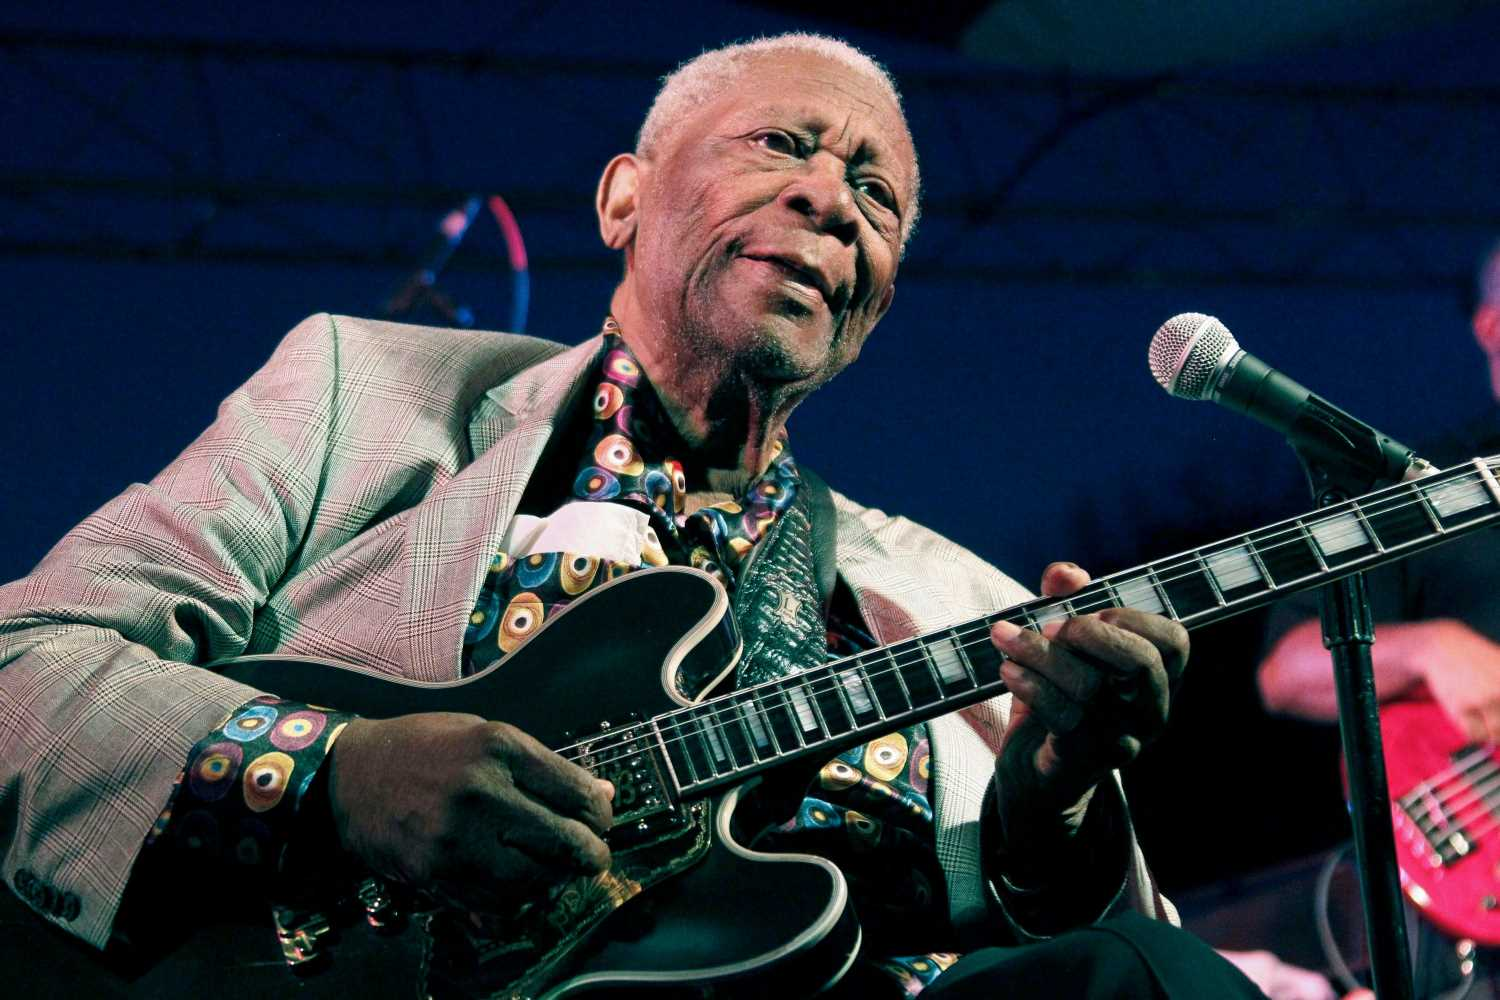 B.B. King: One of Blues Legend's 'Lucille' Guitars Headed to Auction